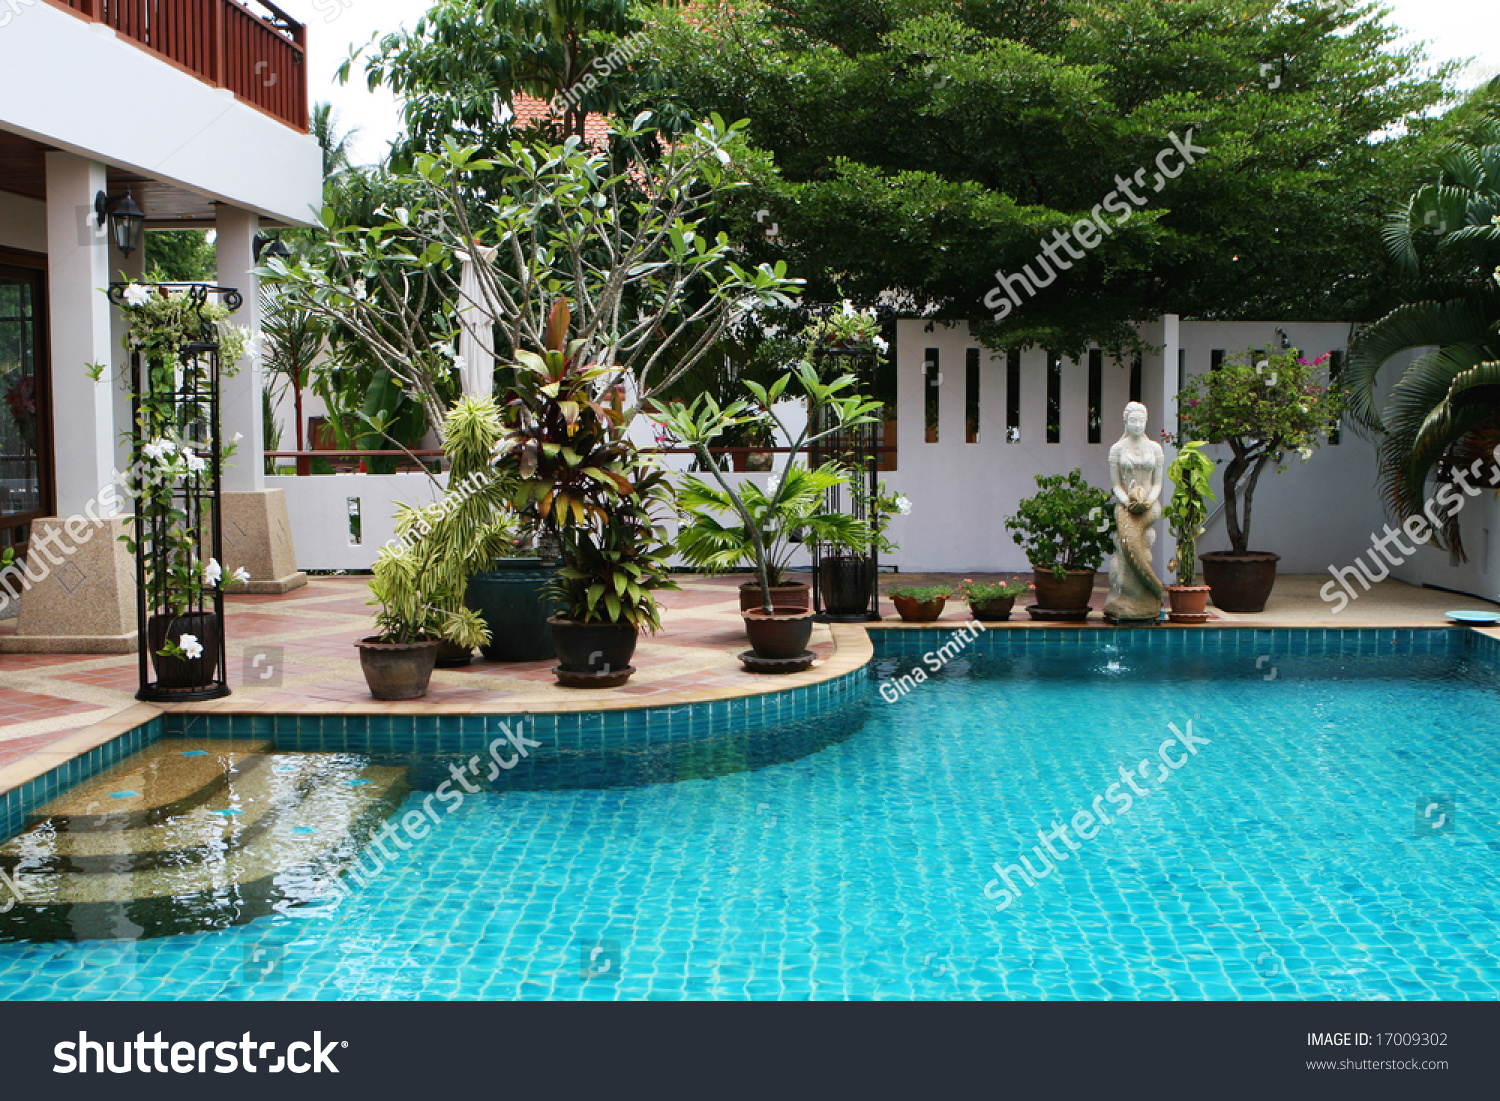 Beautiful Swimming Pool In The Courtyard Of A House In Thailand Stock Photo 17009302 Shutterstock